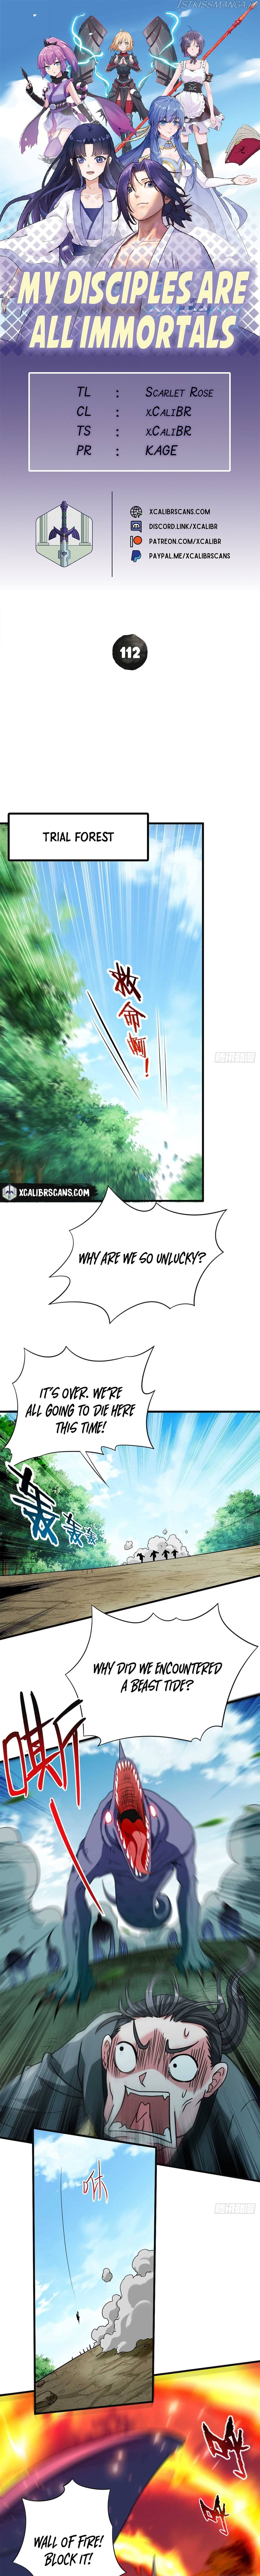 Manga My Disciples Are Super Gods - Chapter 112 Page 1